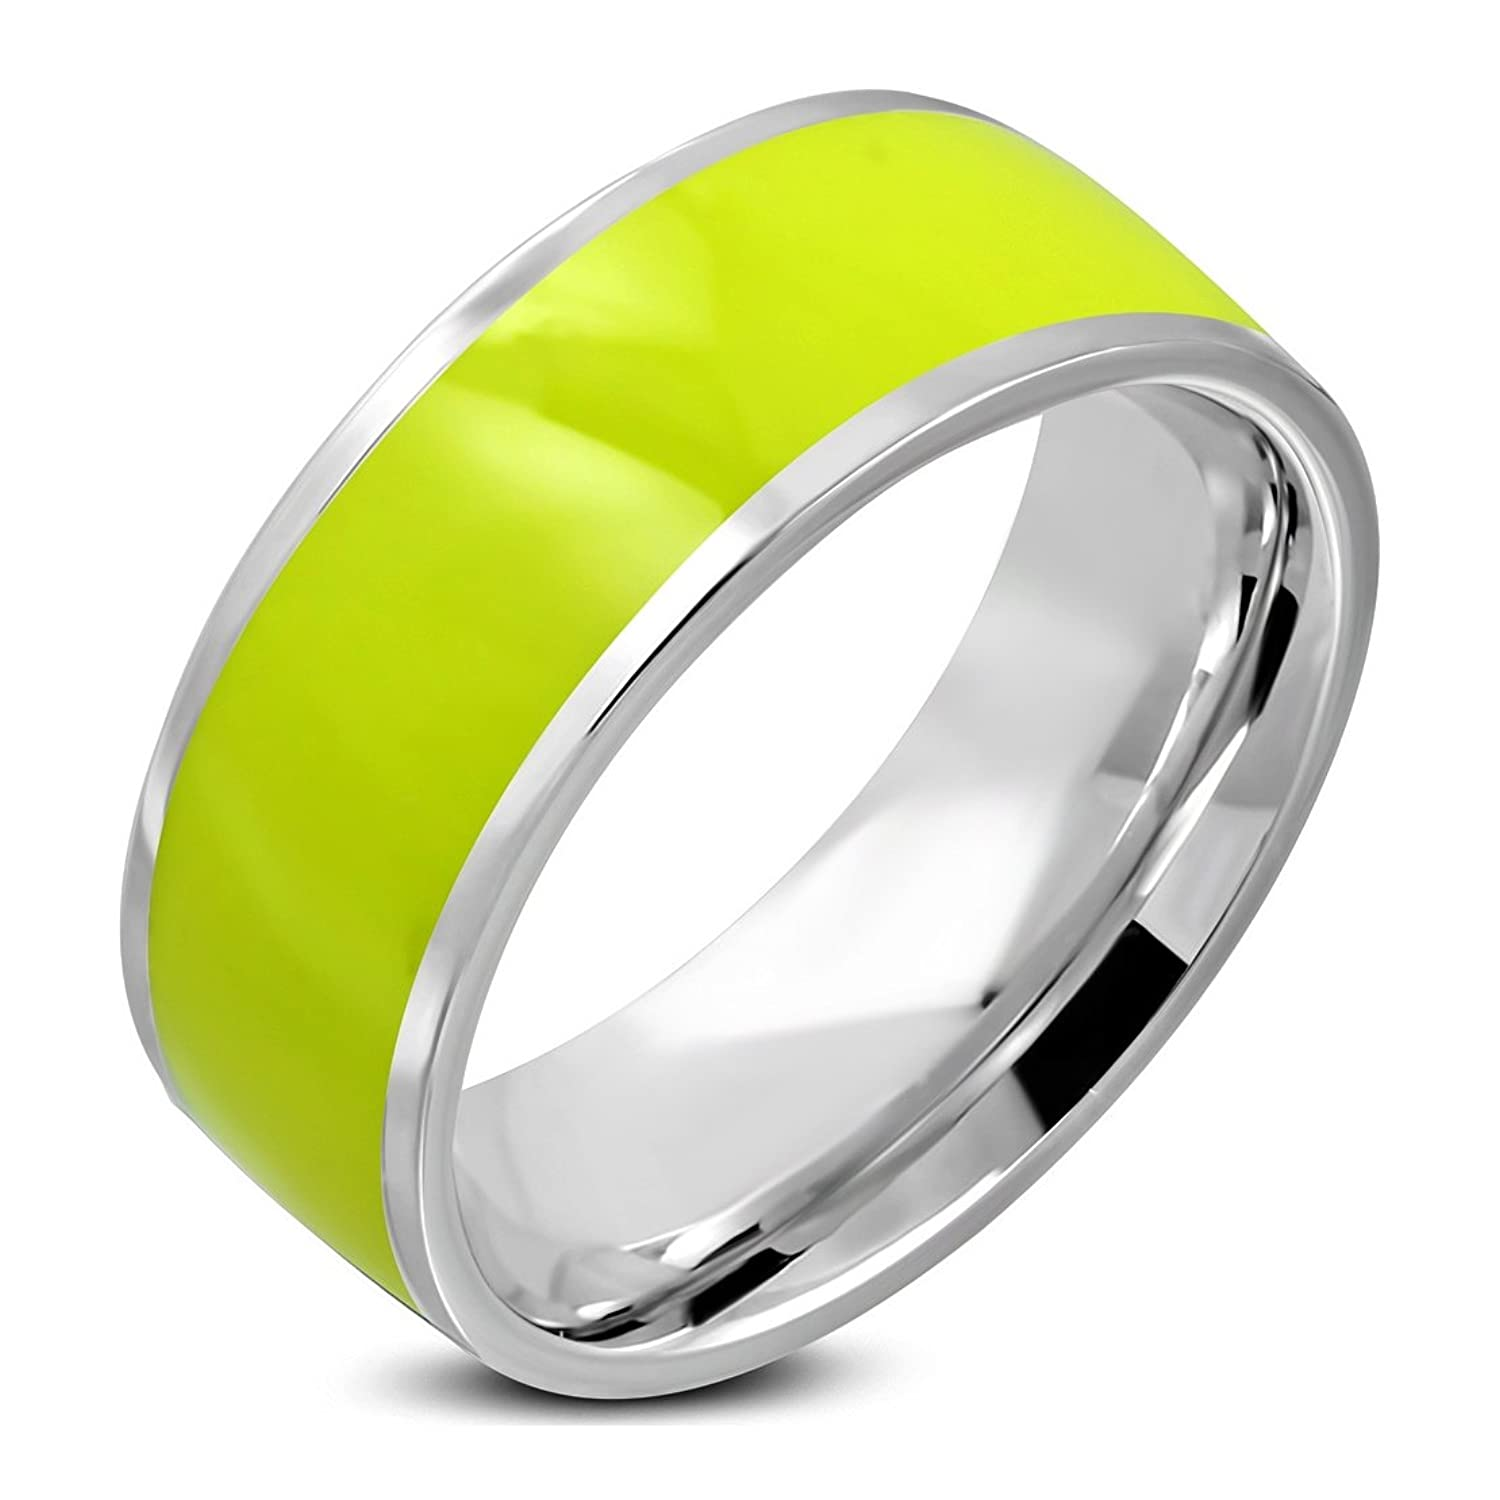 Stainless Steel 2 Color Yellow Enameled Comfort Fit Flat Band Ring